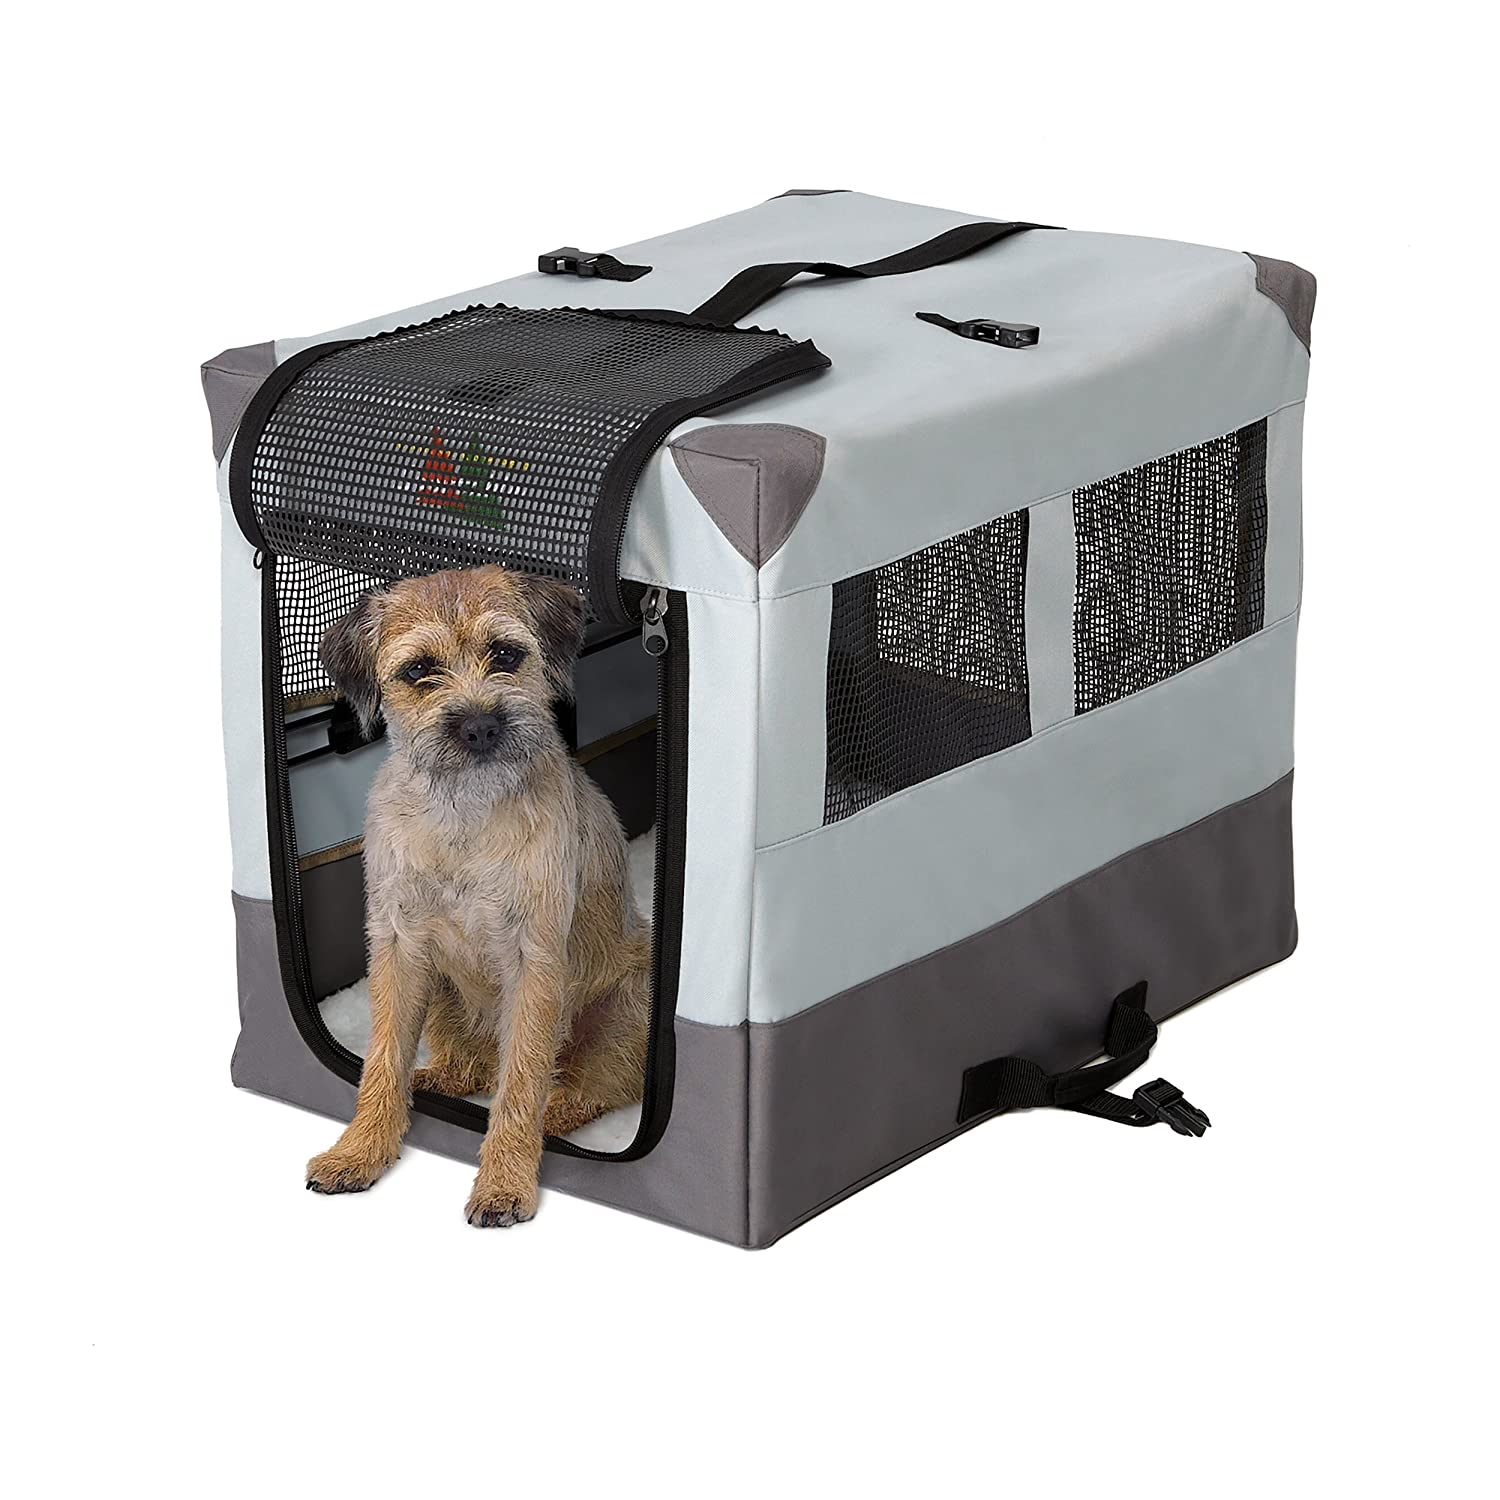 24 by 17.5 by 20.25-Inch Midwest Home for Pets Portable Tent Crate, 24 by 17.5 by 20.25-Inch